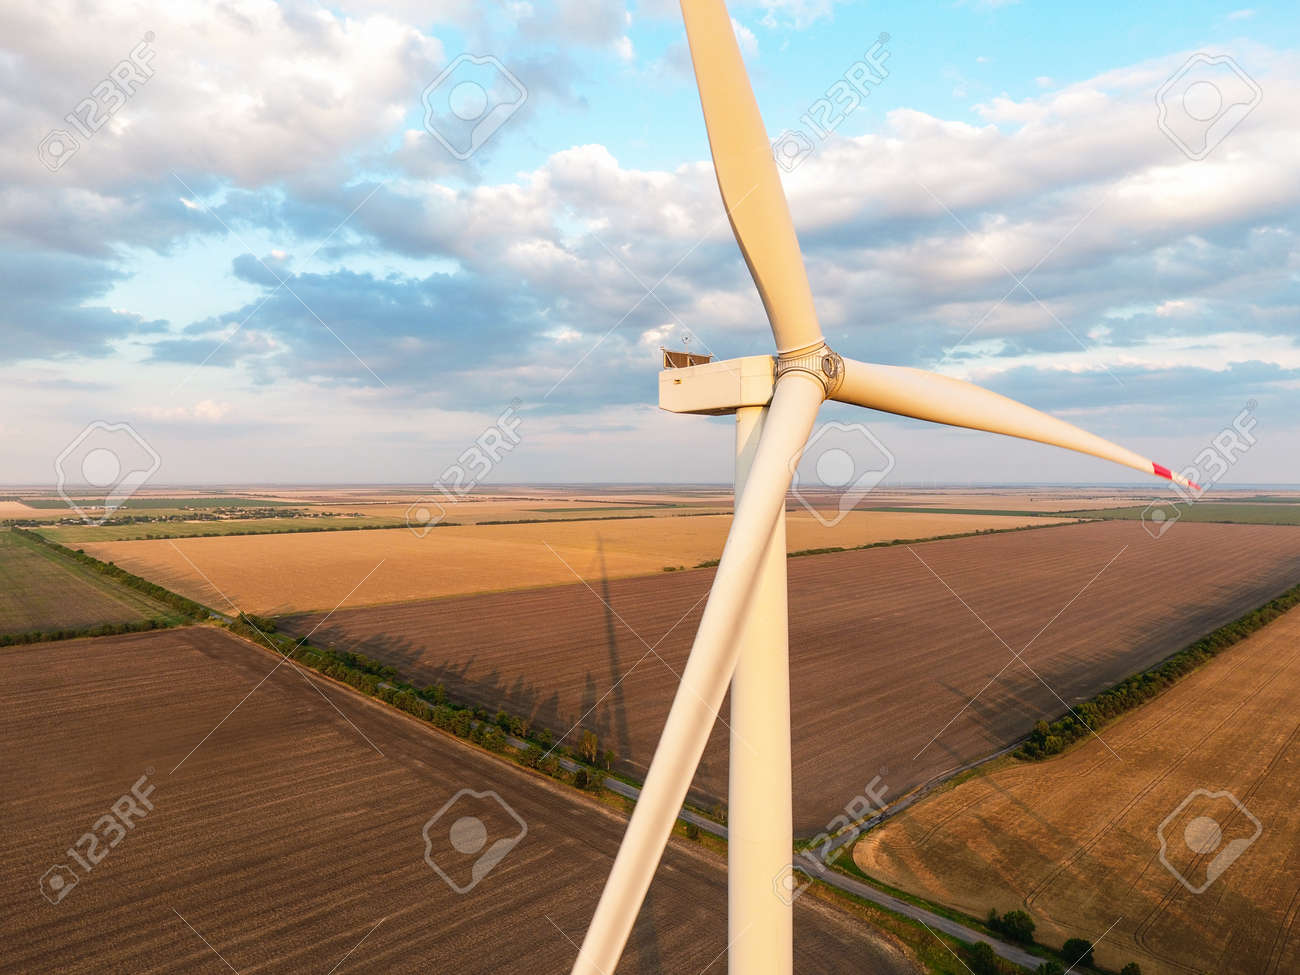 Windmill for electric power in countryside - 169790602